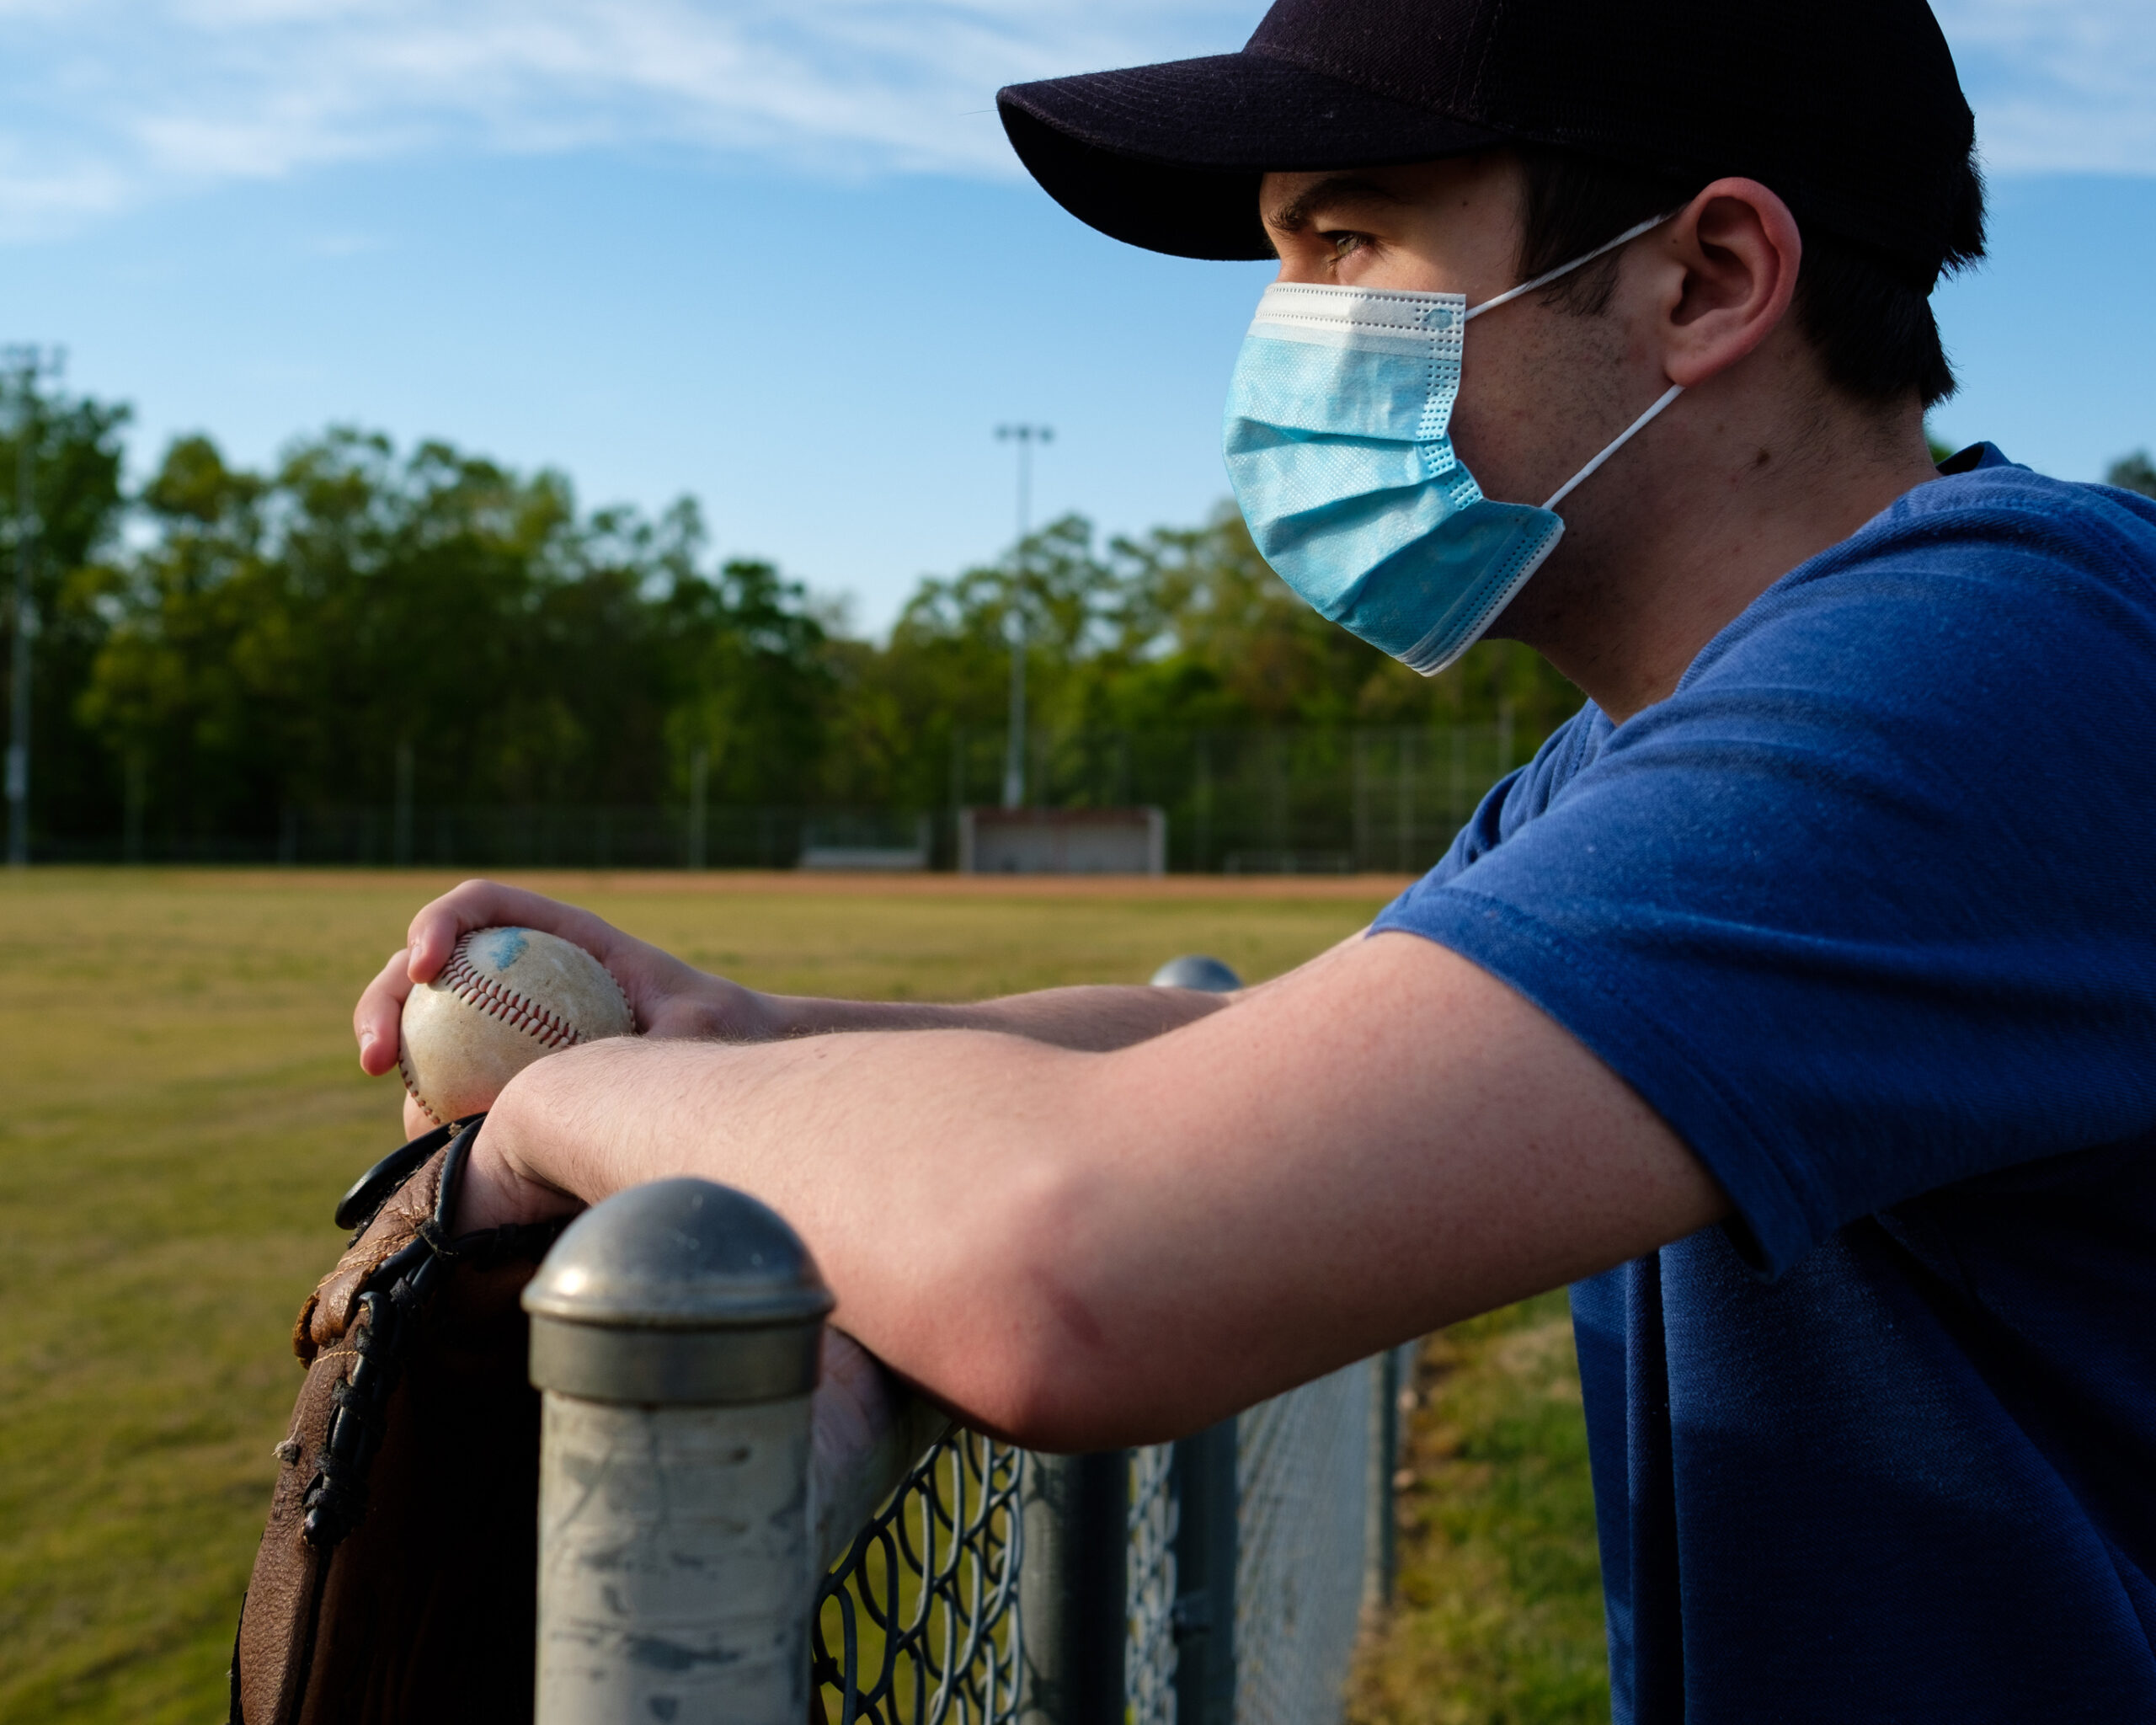 Waiting with Face Mask to Play Baseball